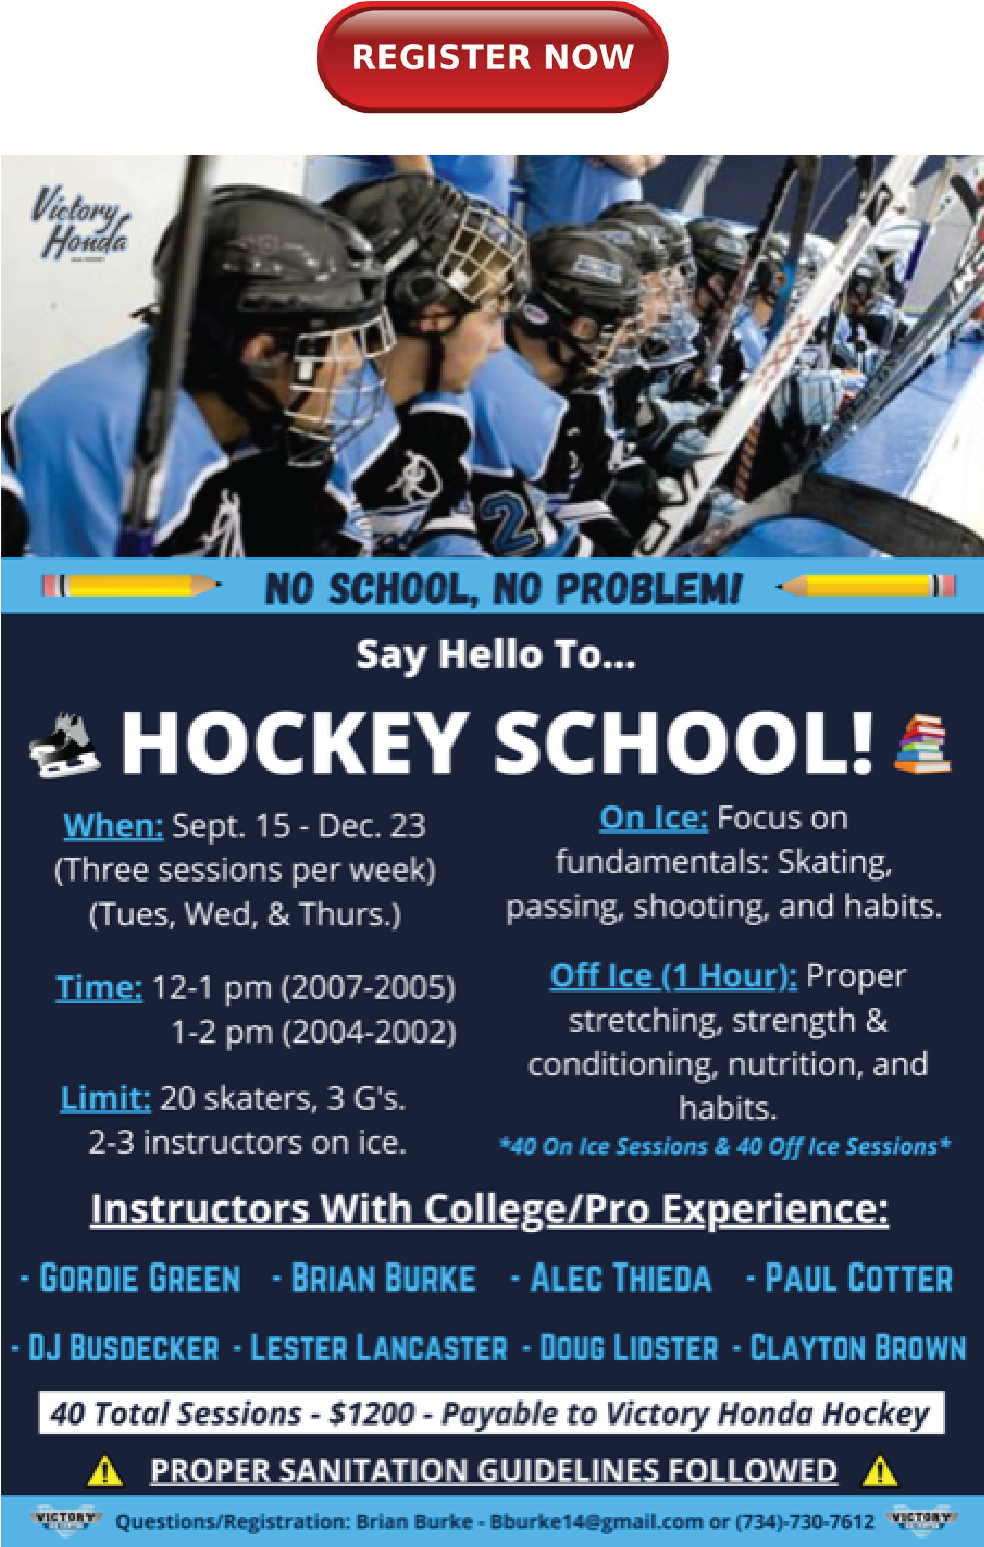 VH Hockey School